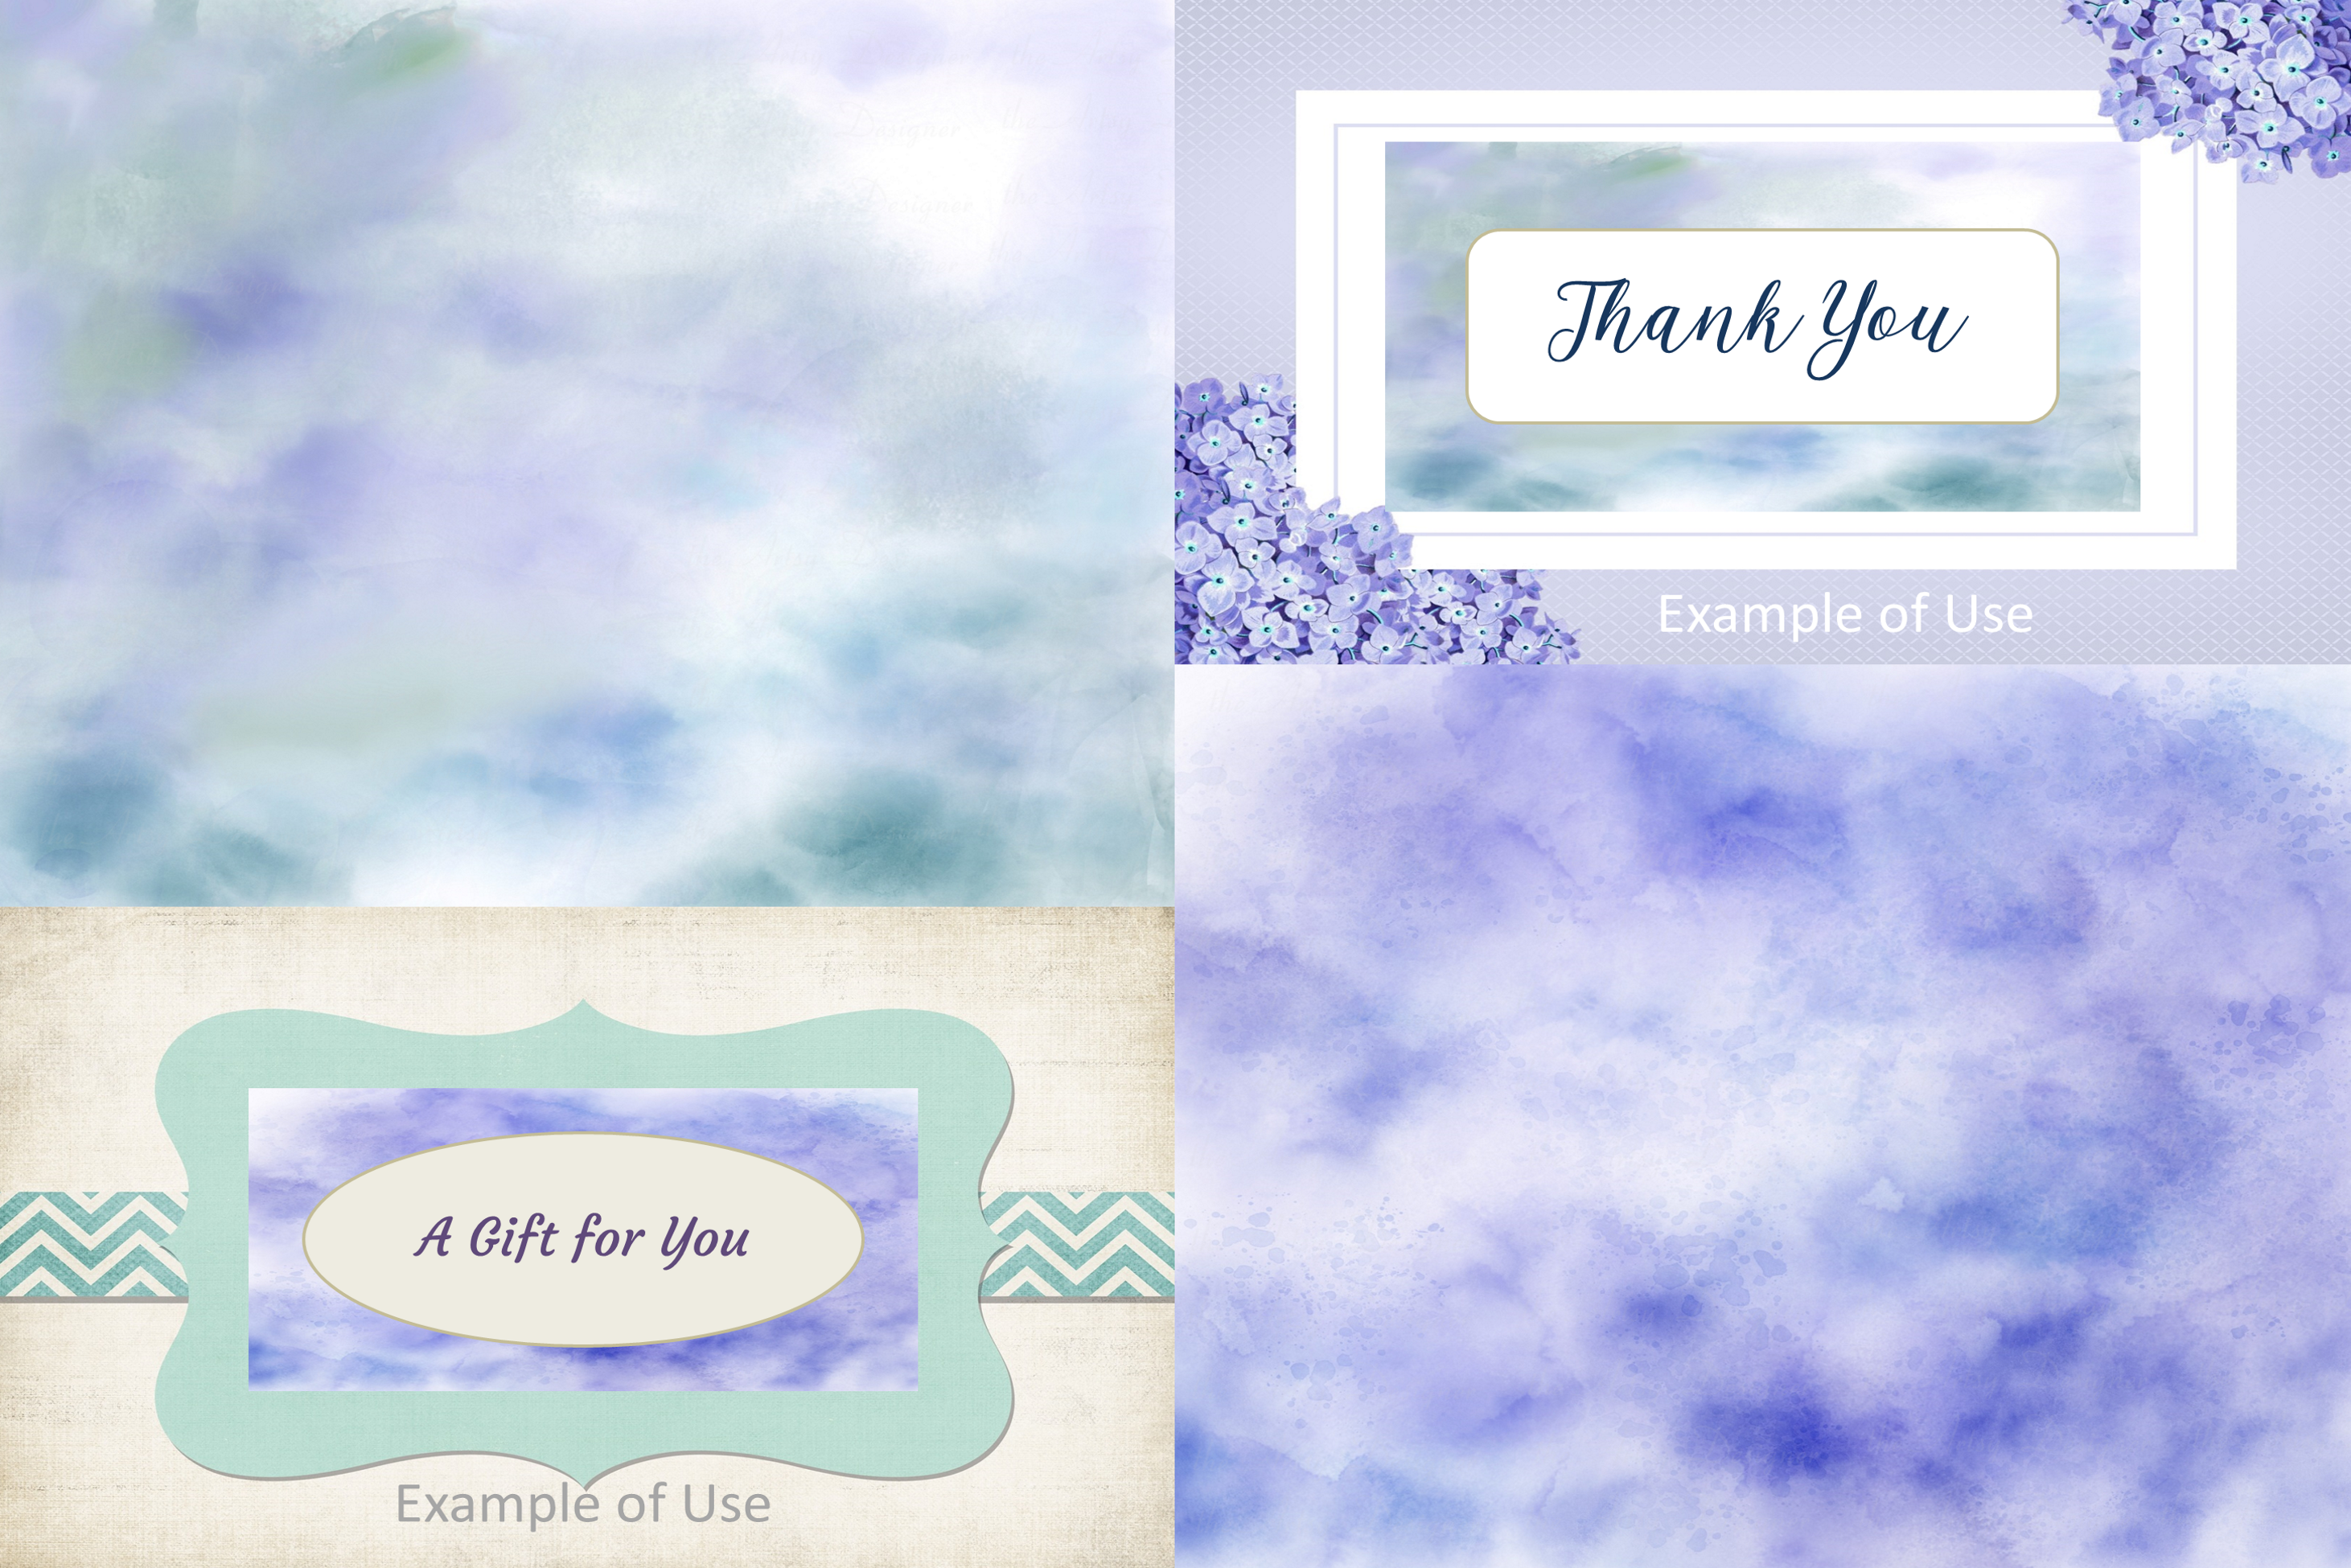 10 Background Digital Watercolor Dreams Texture Papers Pack example image 5